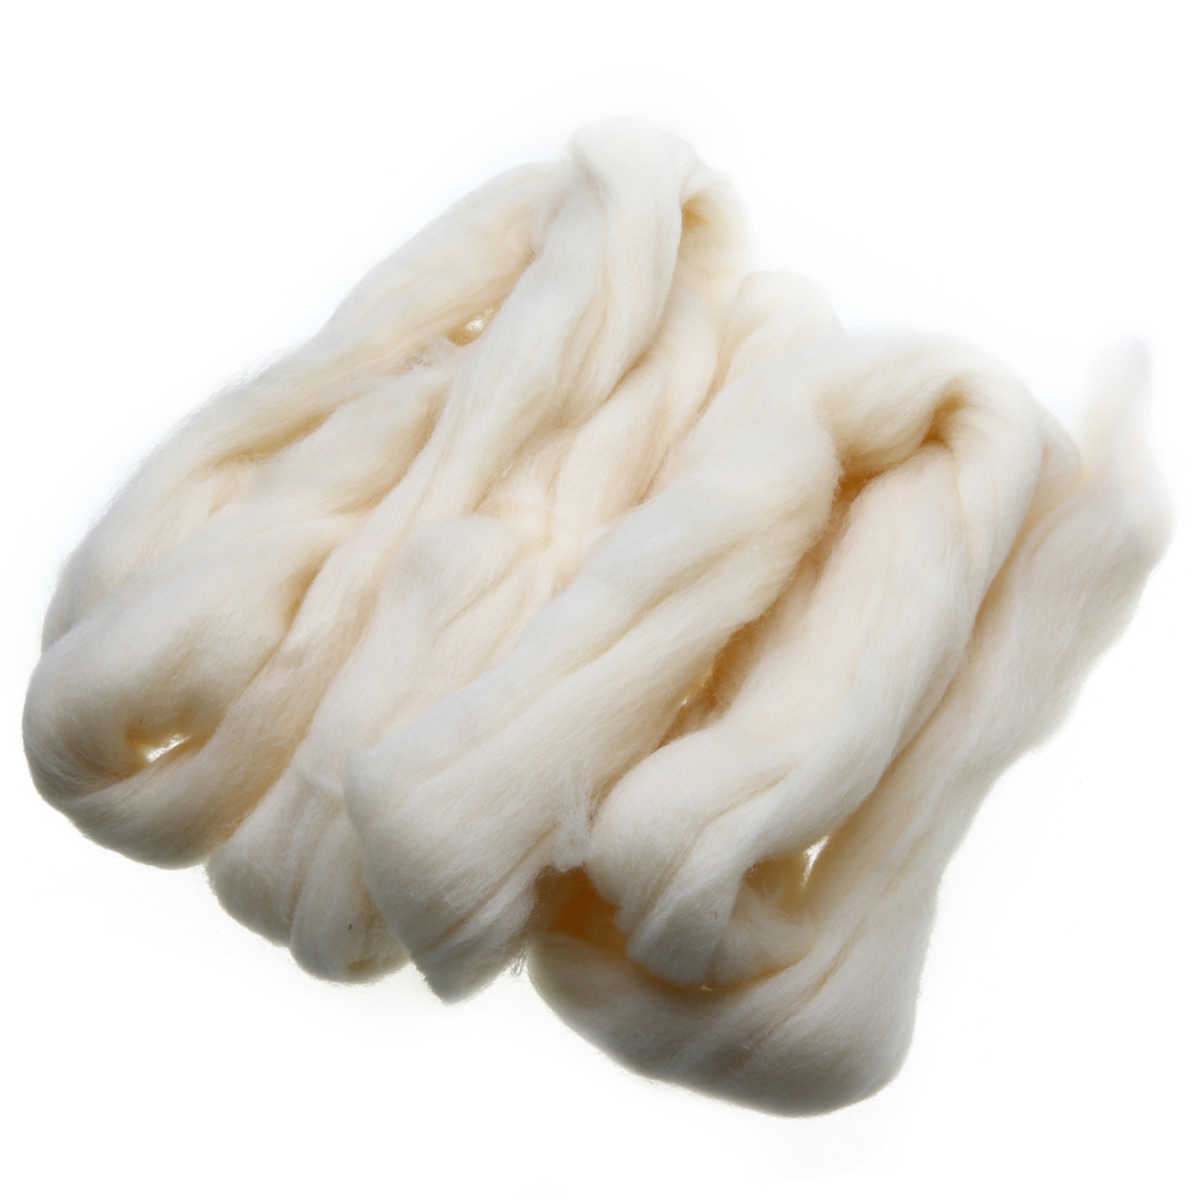 Felting Wool Fiber 100g Cream White Needle Felting Wool Tops Roving Spinning Weaving For DIY Hand Craft Doll Animal Gifts